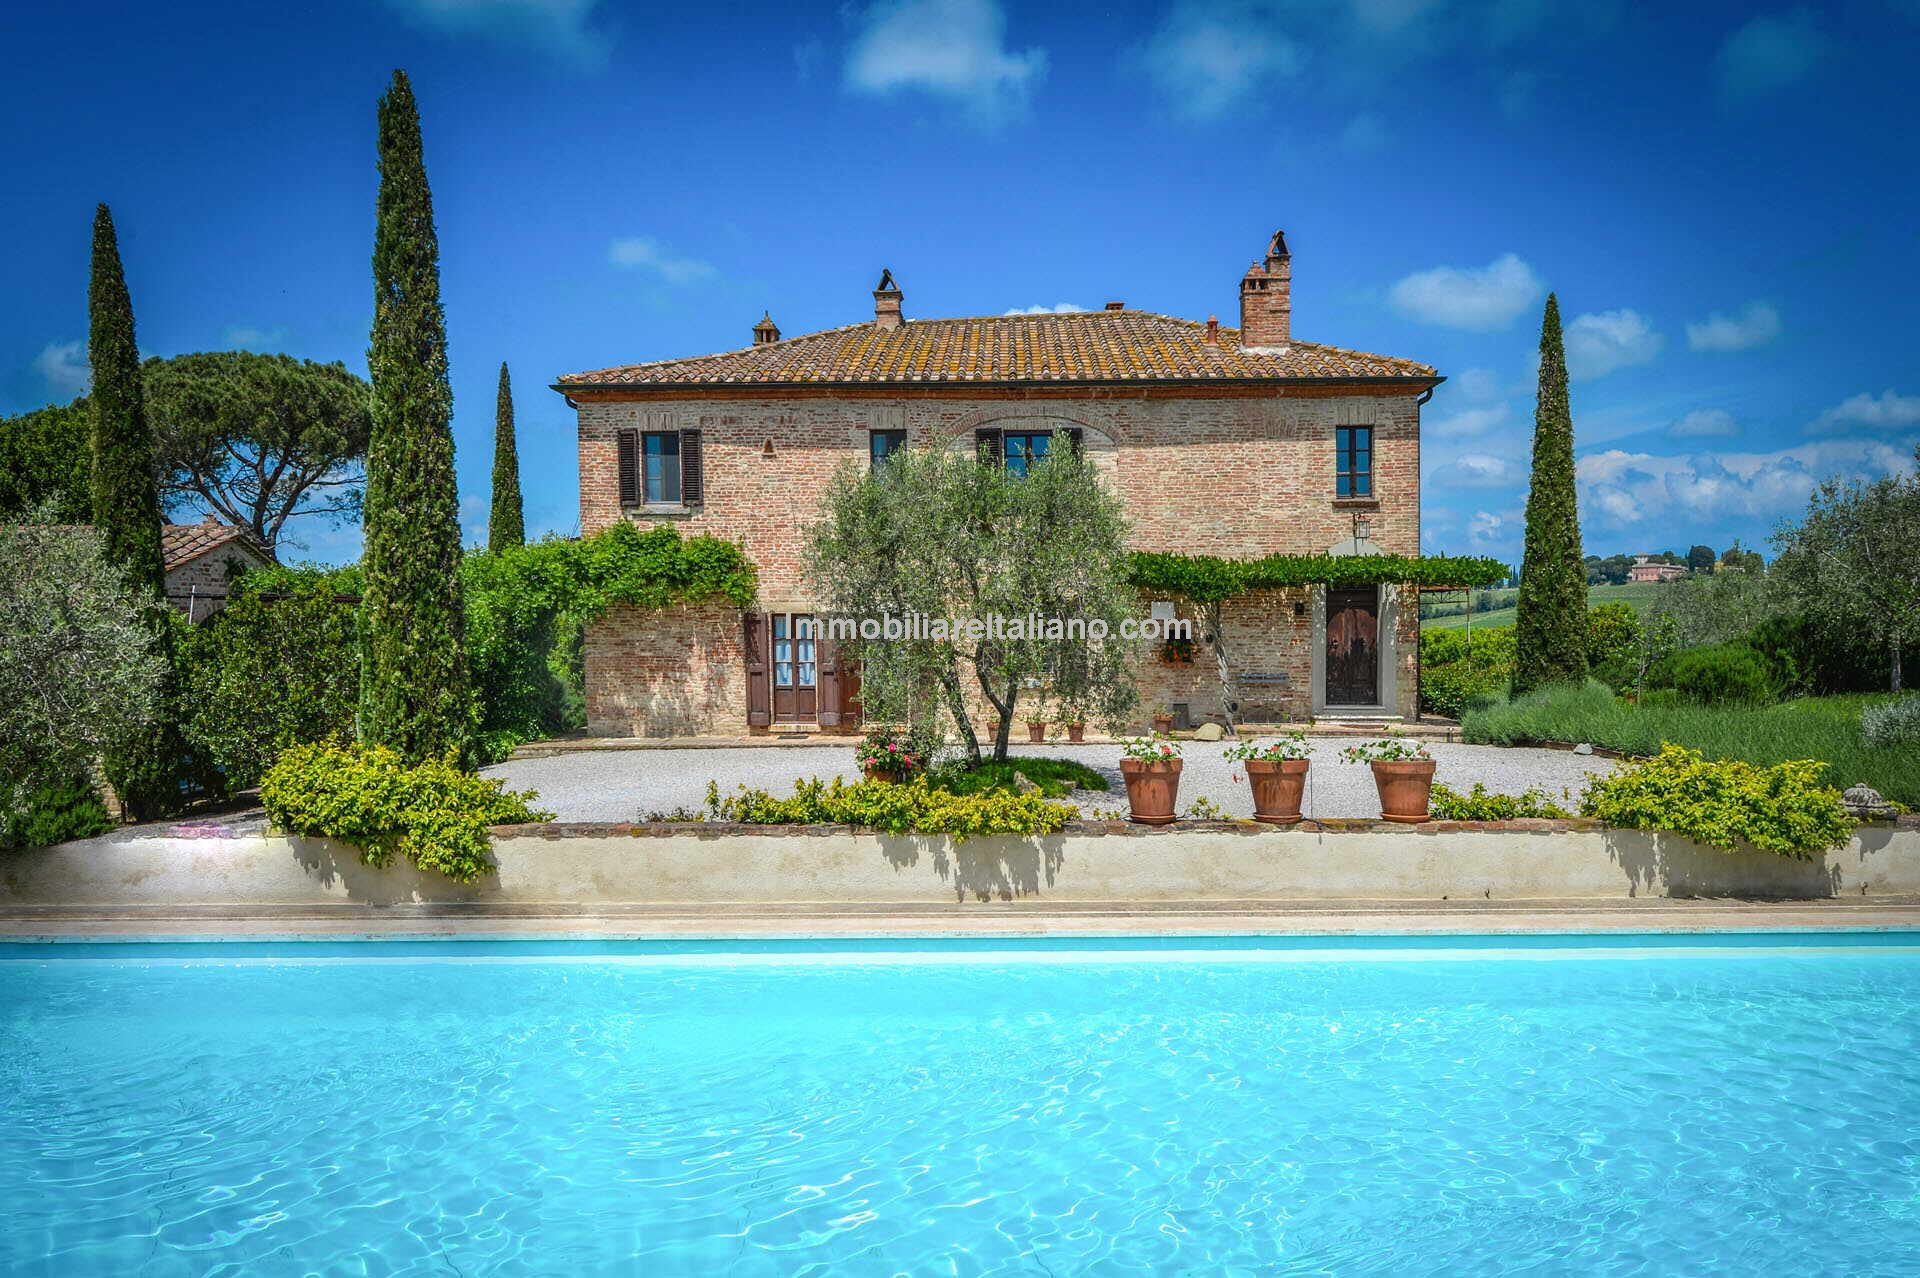 Tuscan farmhouse with guesthouse, annexe, garden and swimming pool